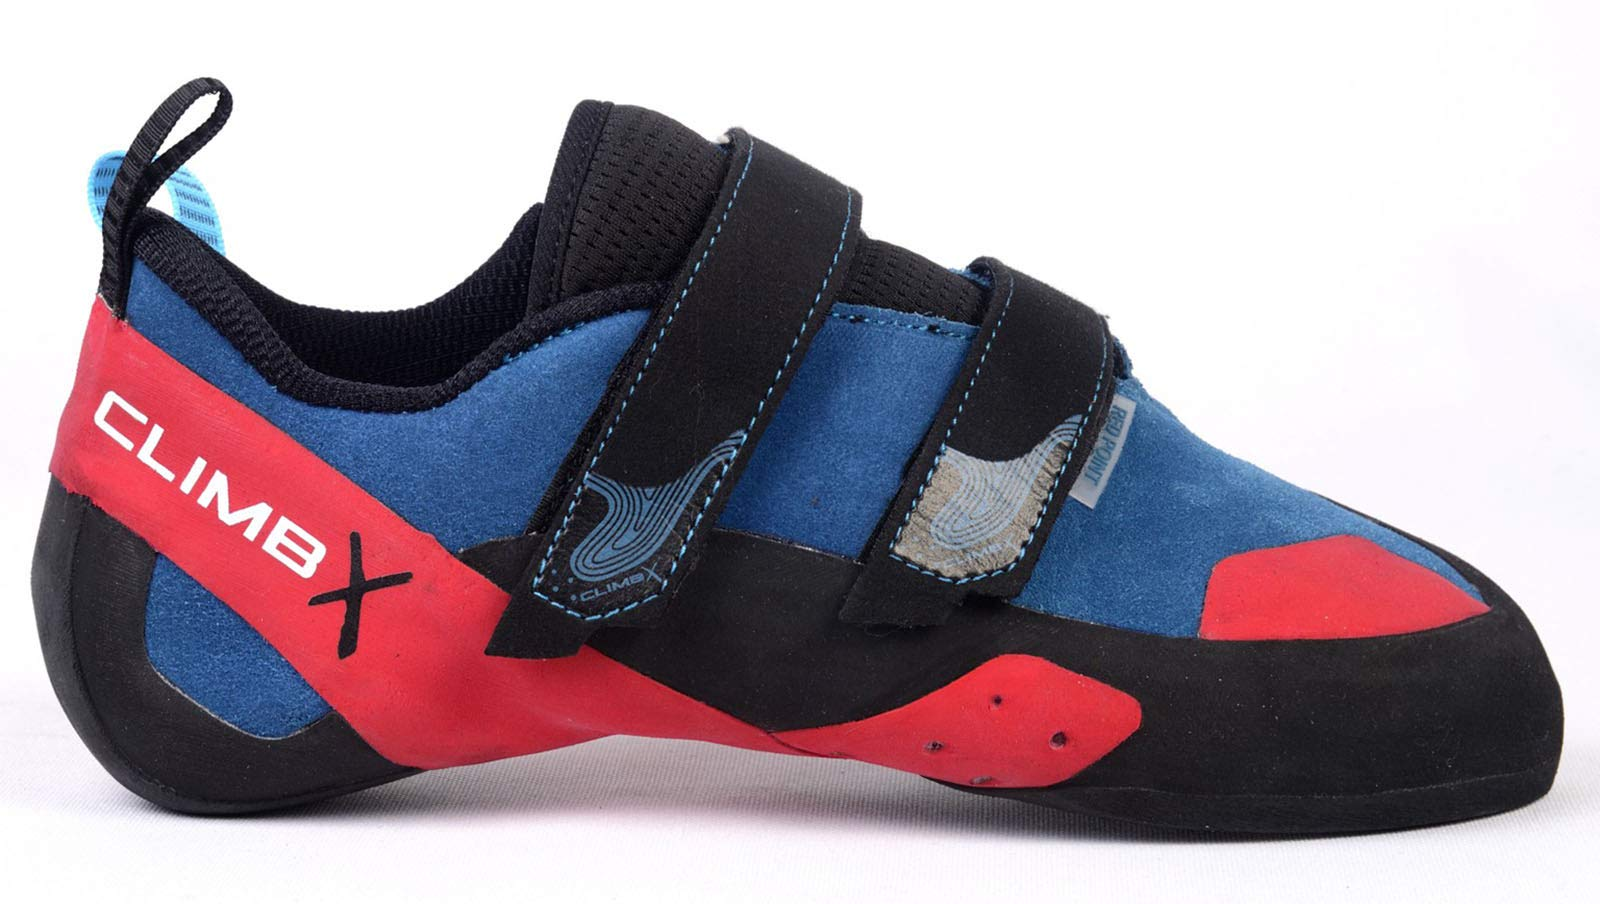 Climb X Gear Red Point Climbing Shoe 2019 (11)